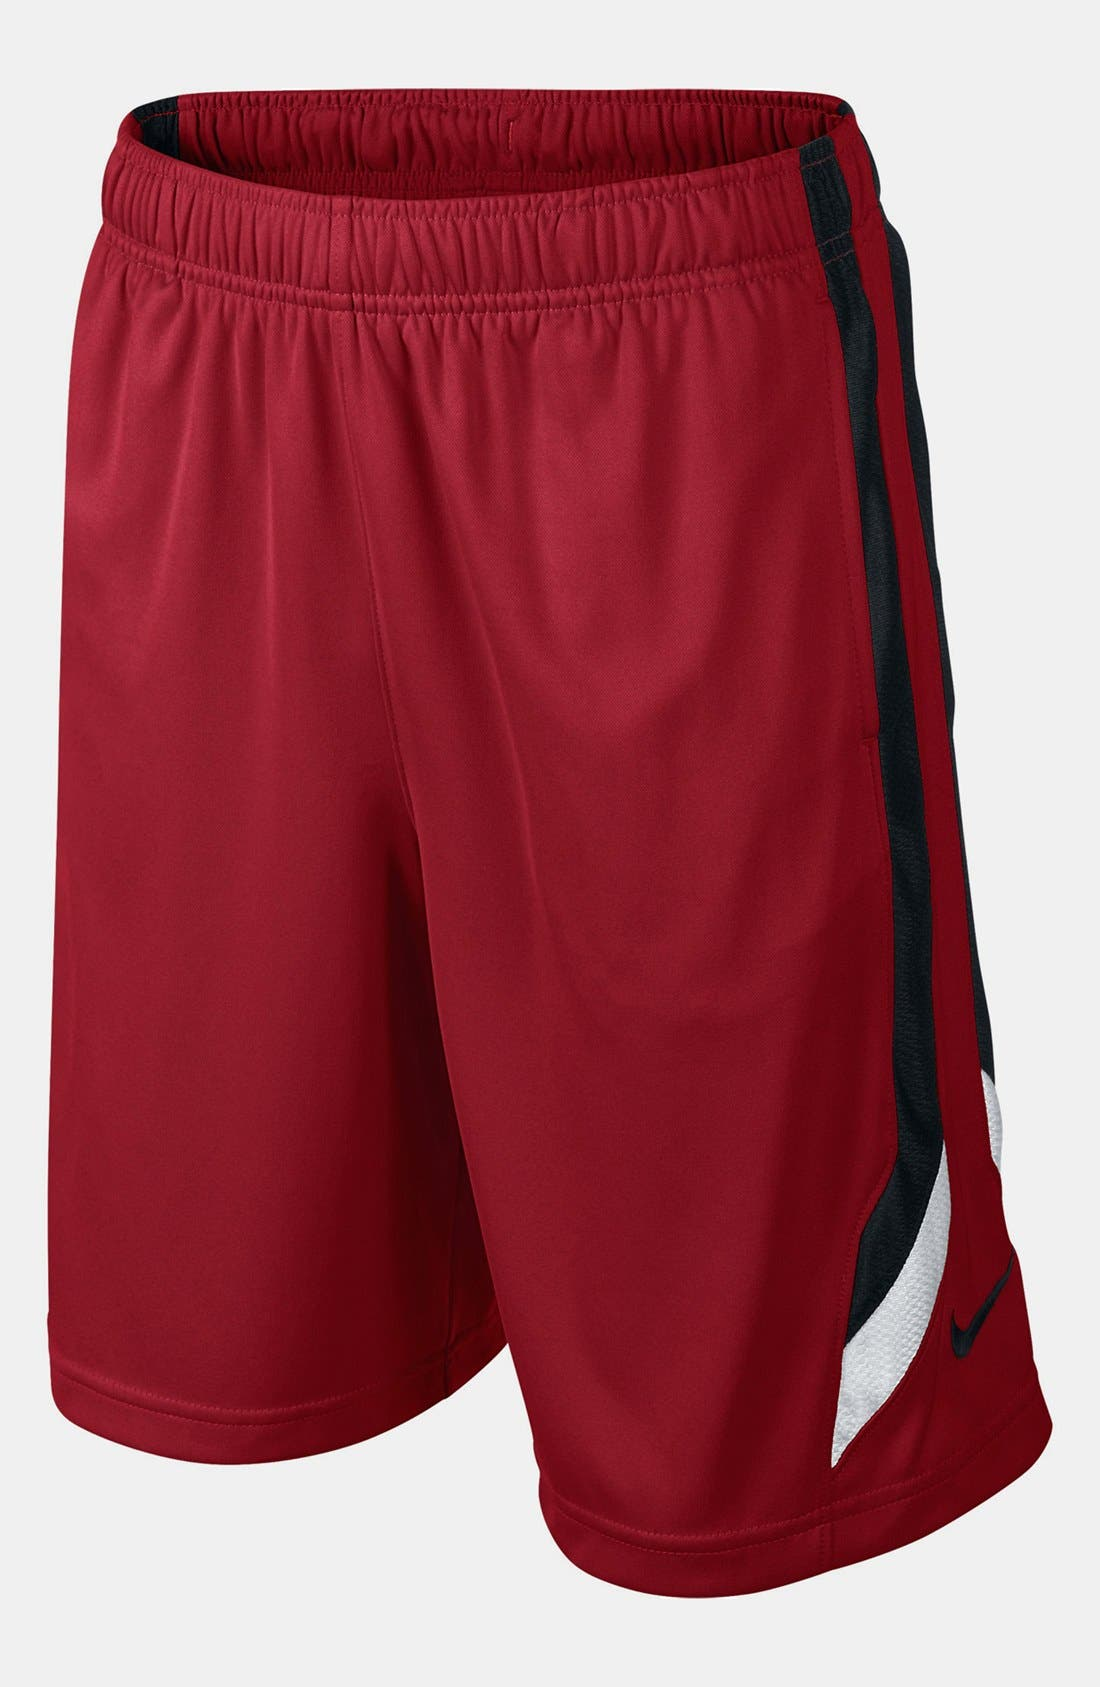 Alternate Image 1 Selected - Nike 'Super Fast' Dri-FIT Basketball Shorts (Big Boys)